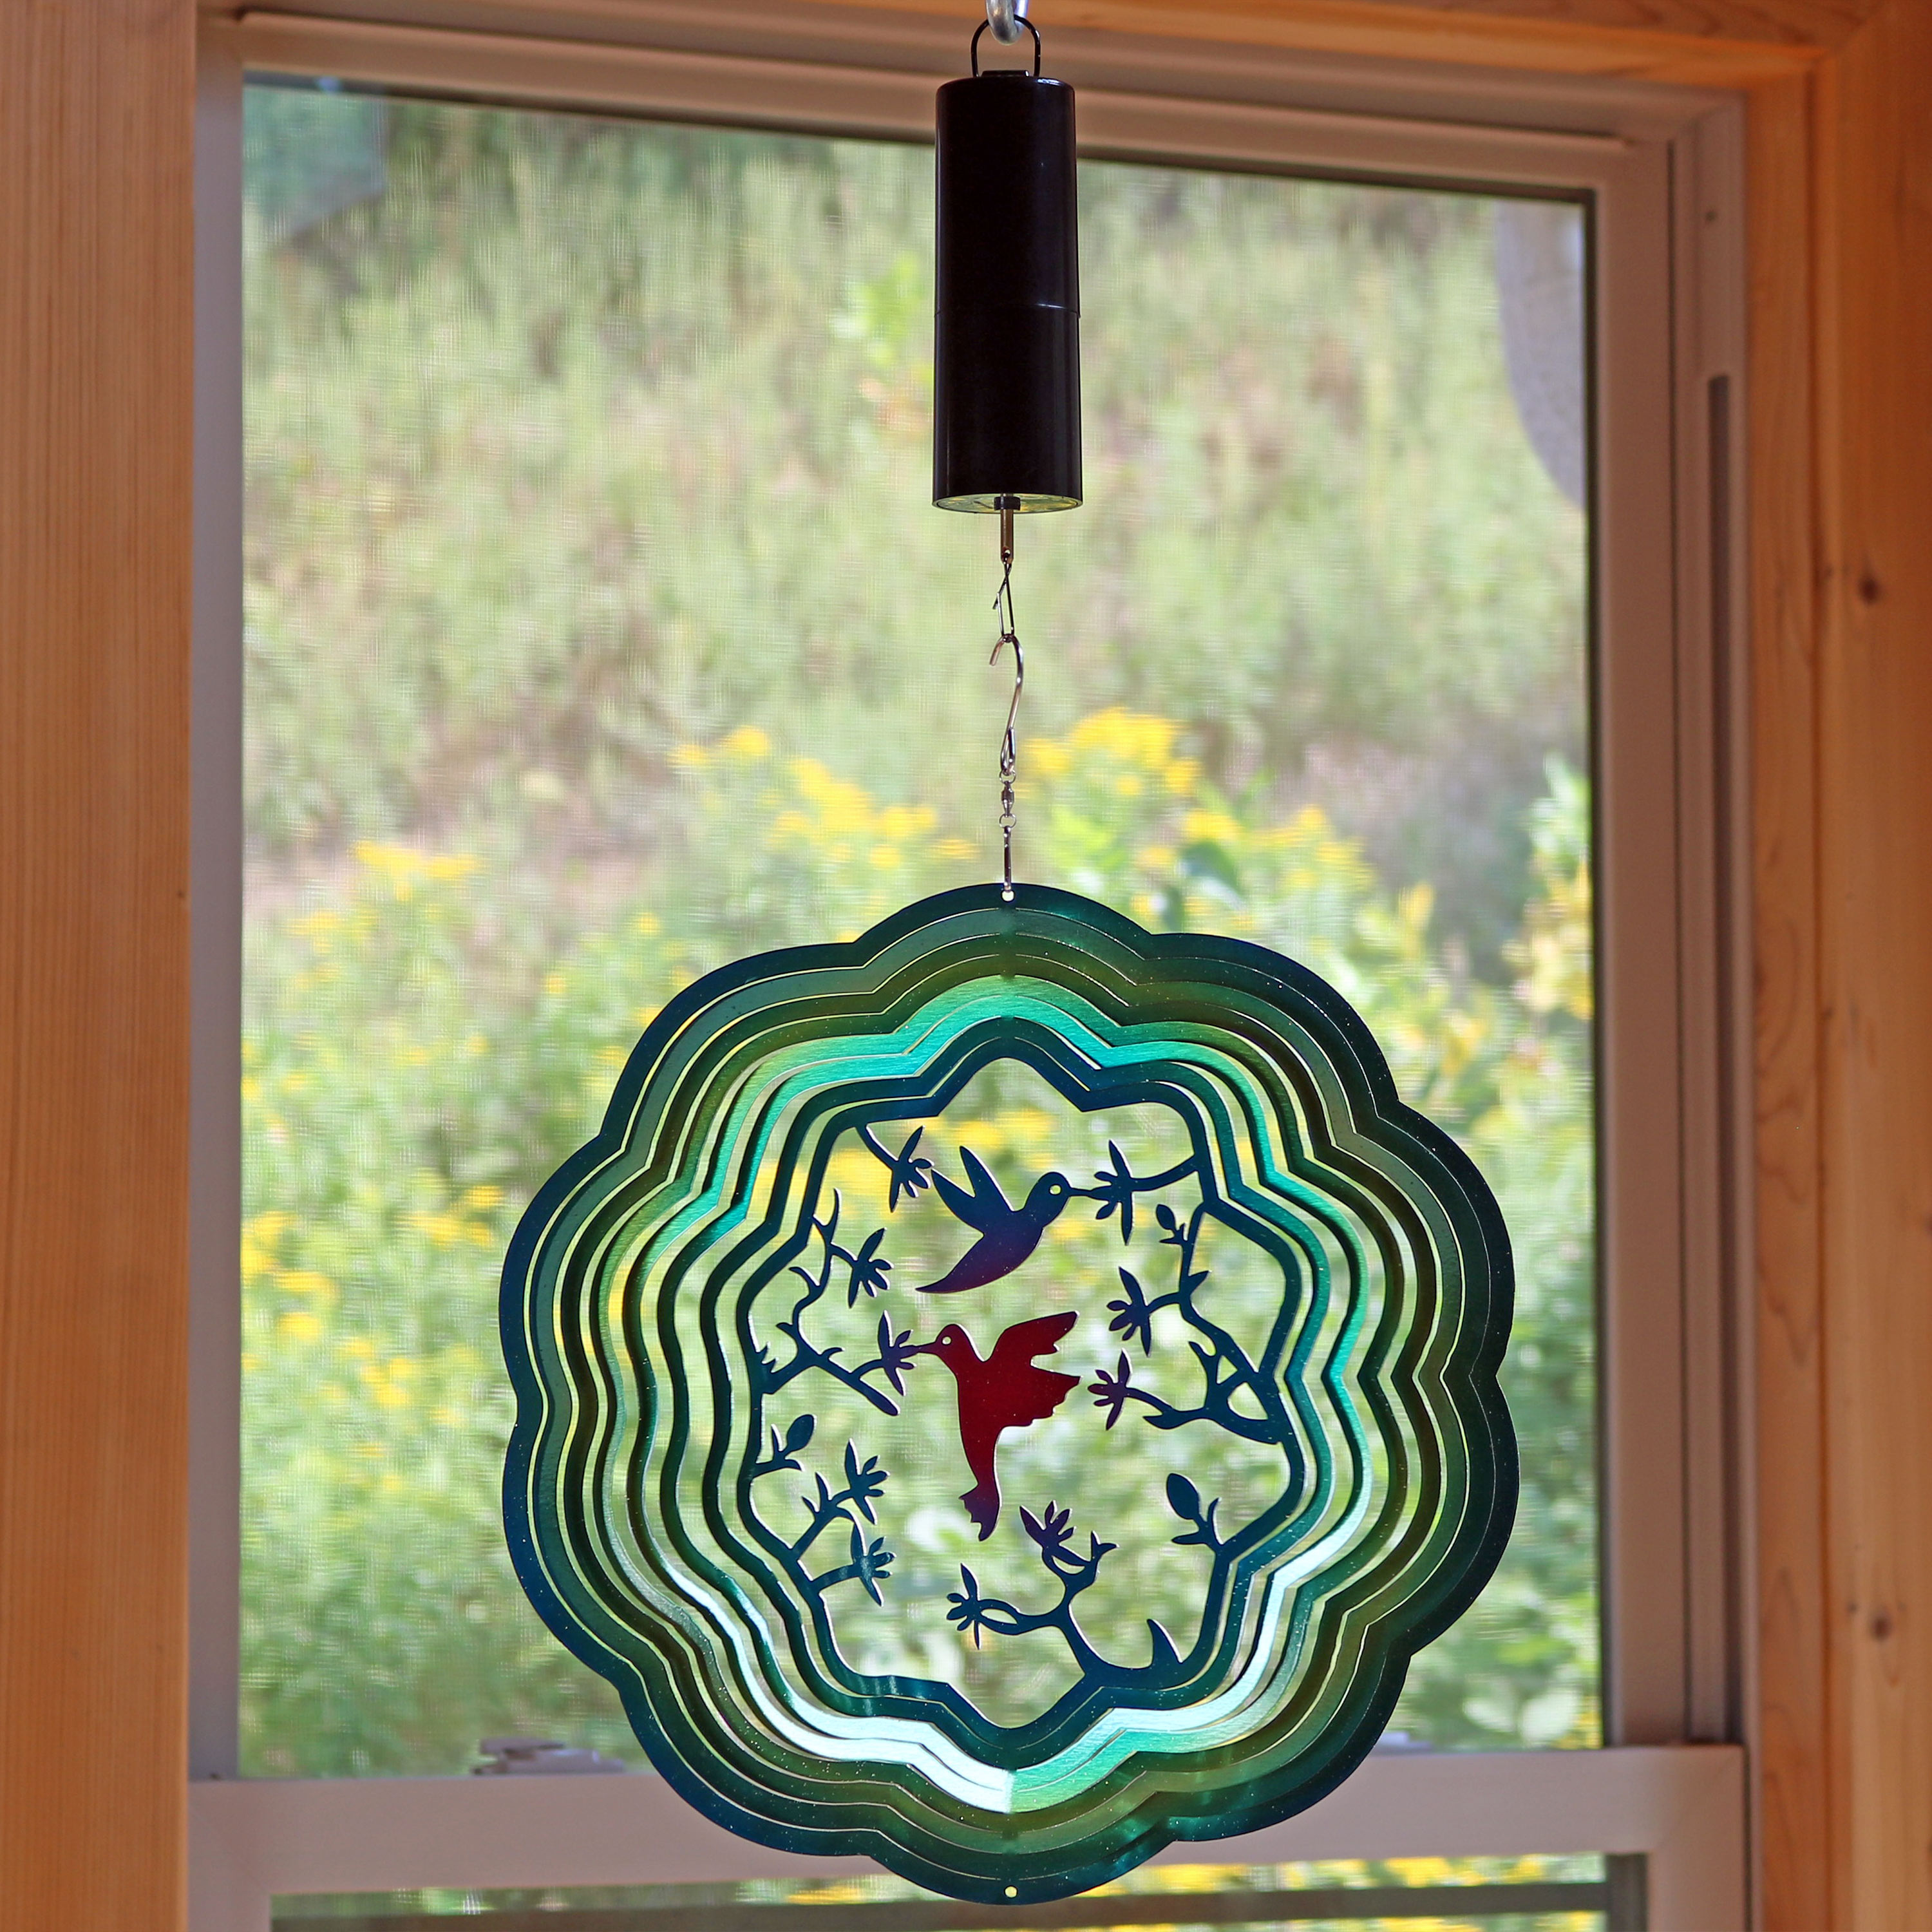 Sunnydaze Turquoise Hummingbird Wind Spinner with Hook, 12-Inch, Yes, Battery Operated Motor